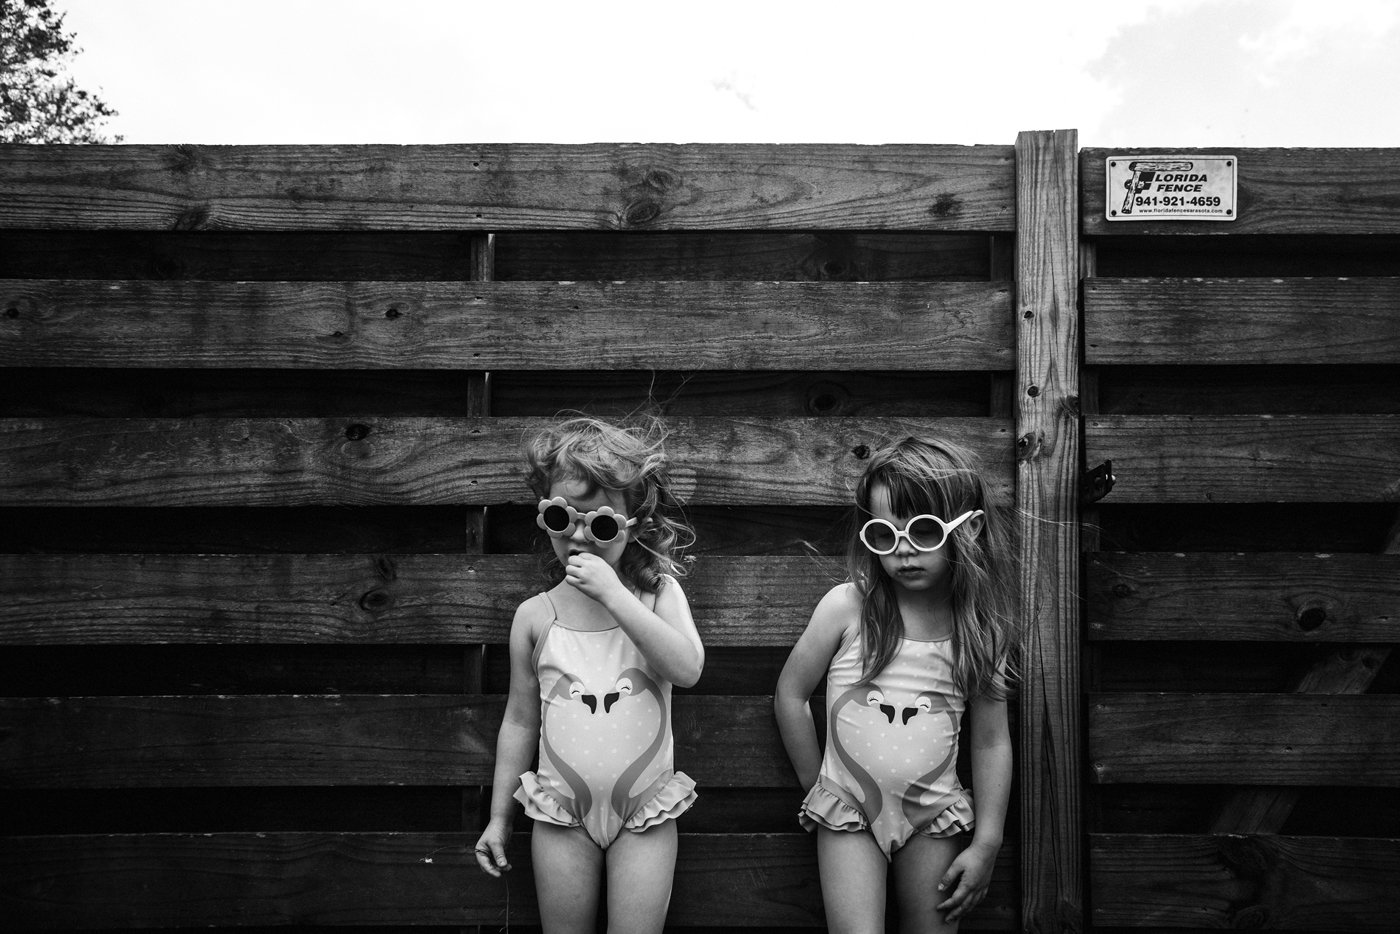 'Florida Girls' by Lauren Mitchell